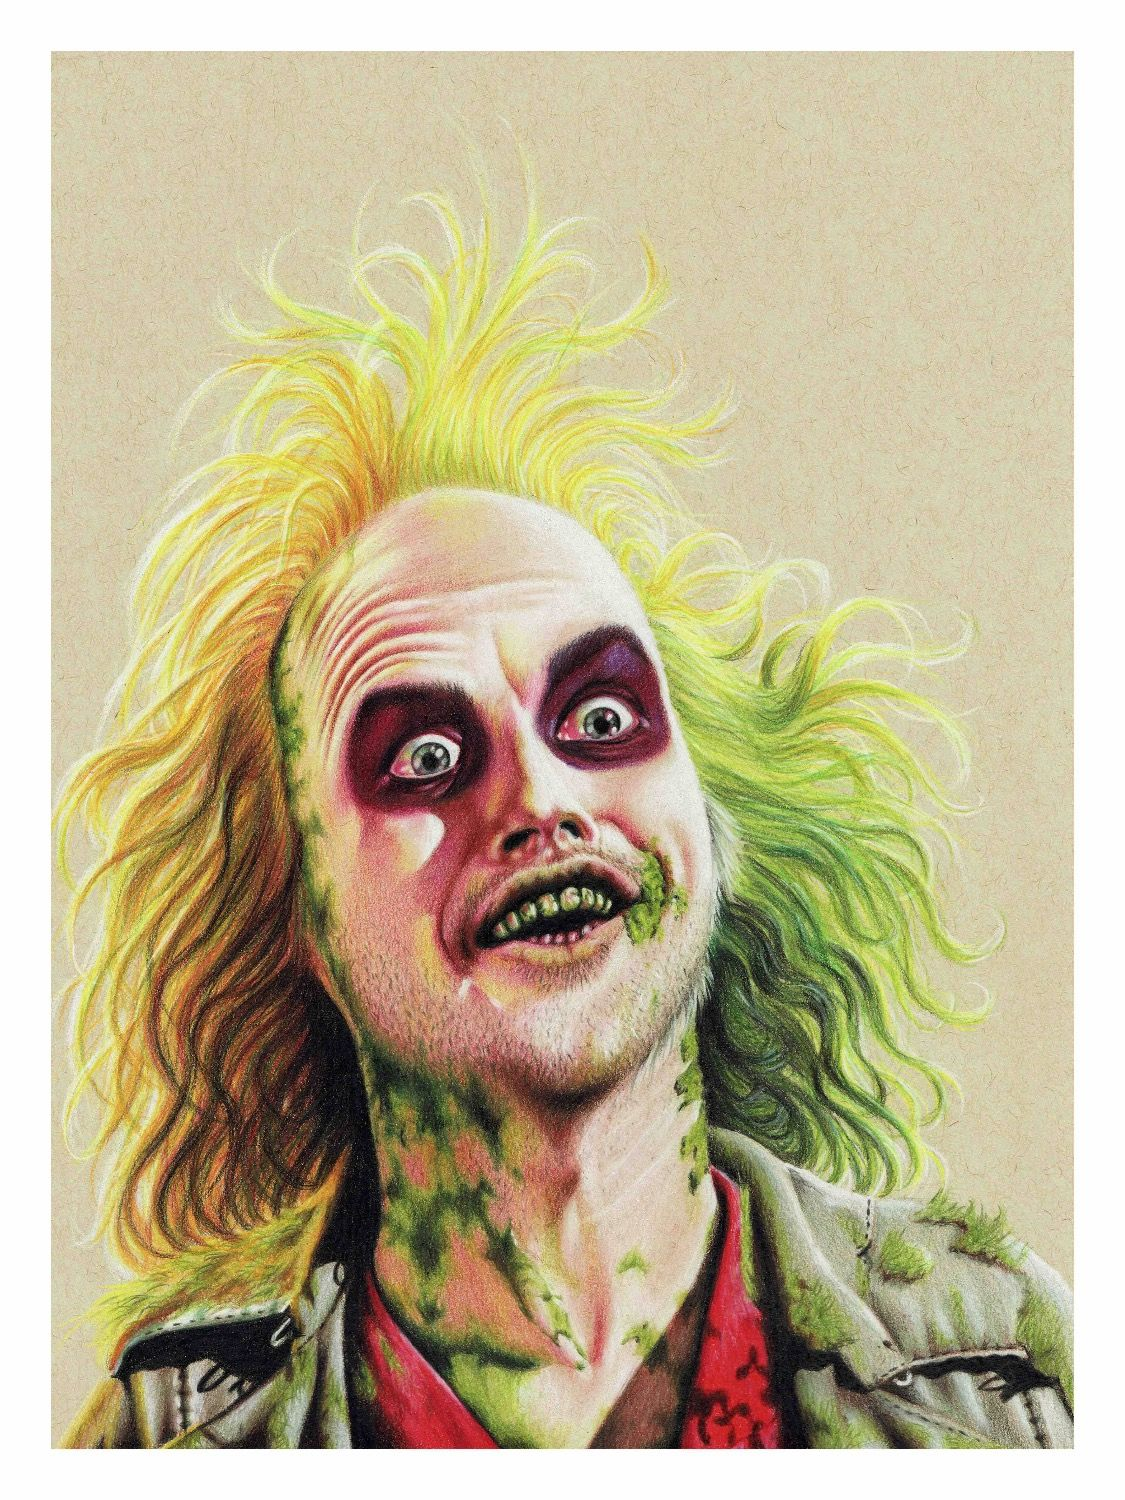 Beetlejuice #beetlejuice #timburton #michealkeaton #drawing #movie ...